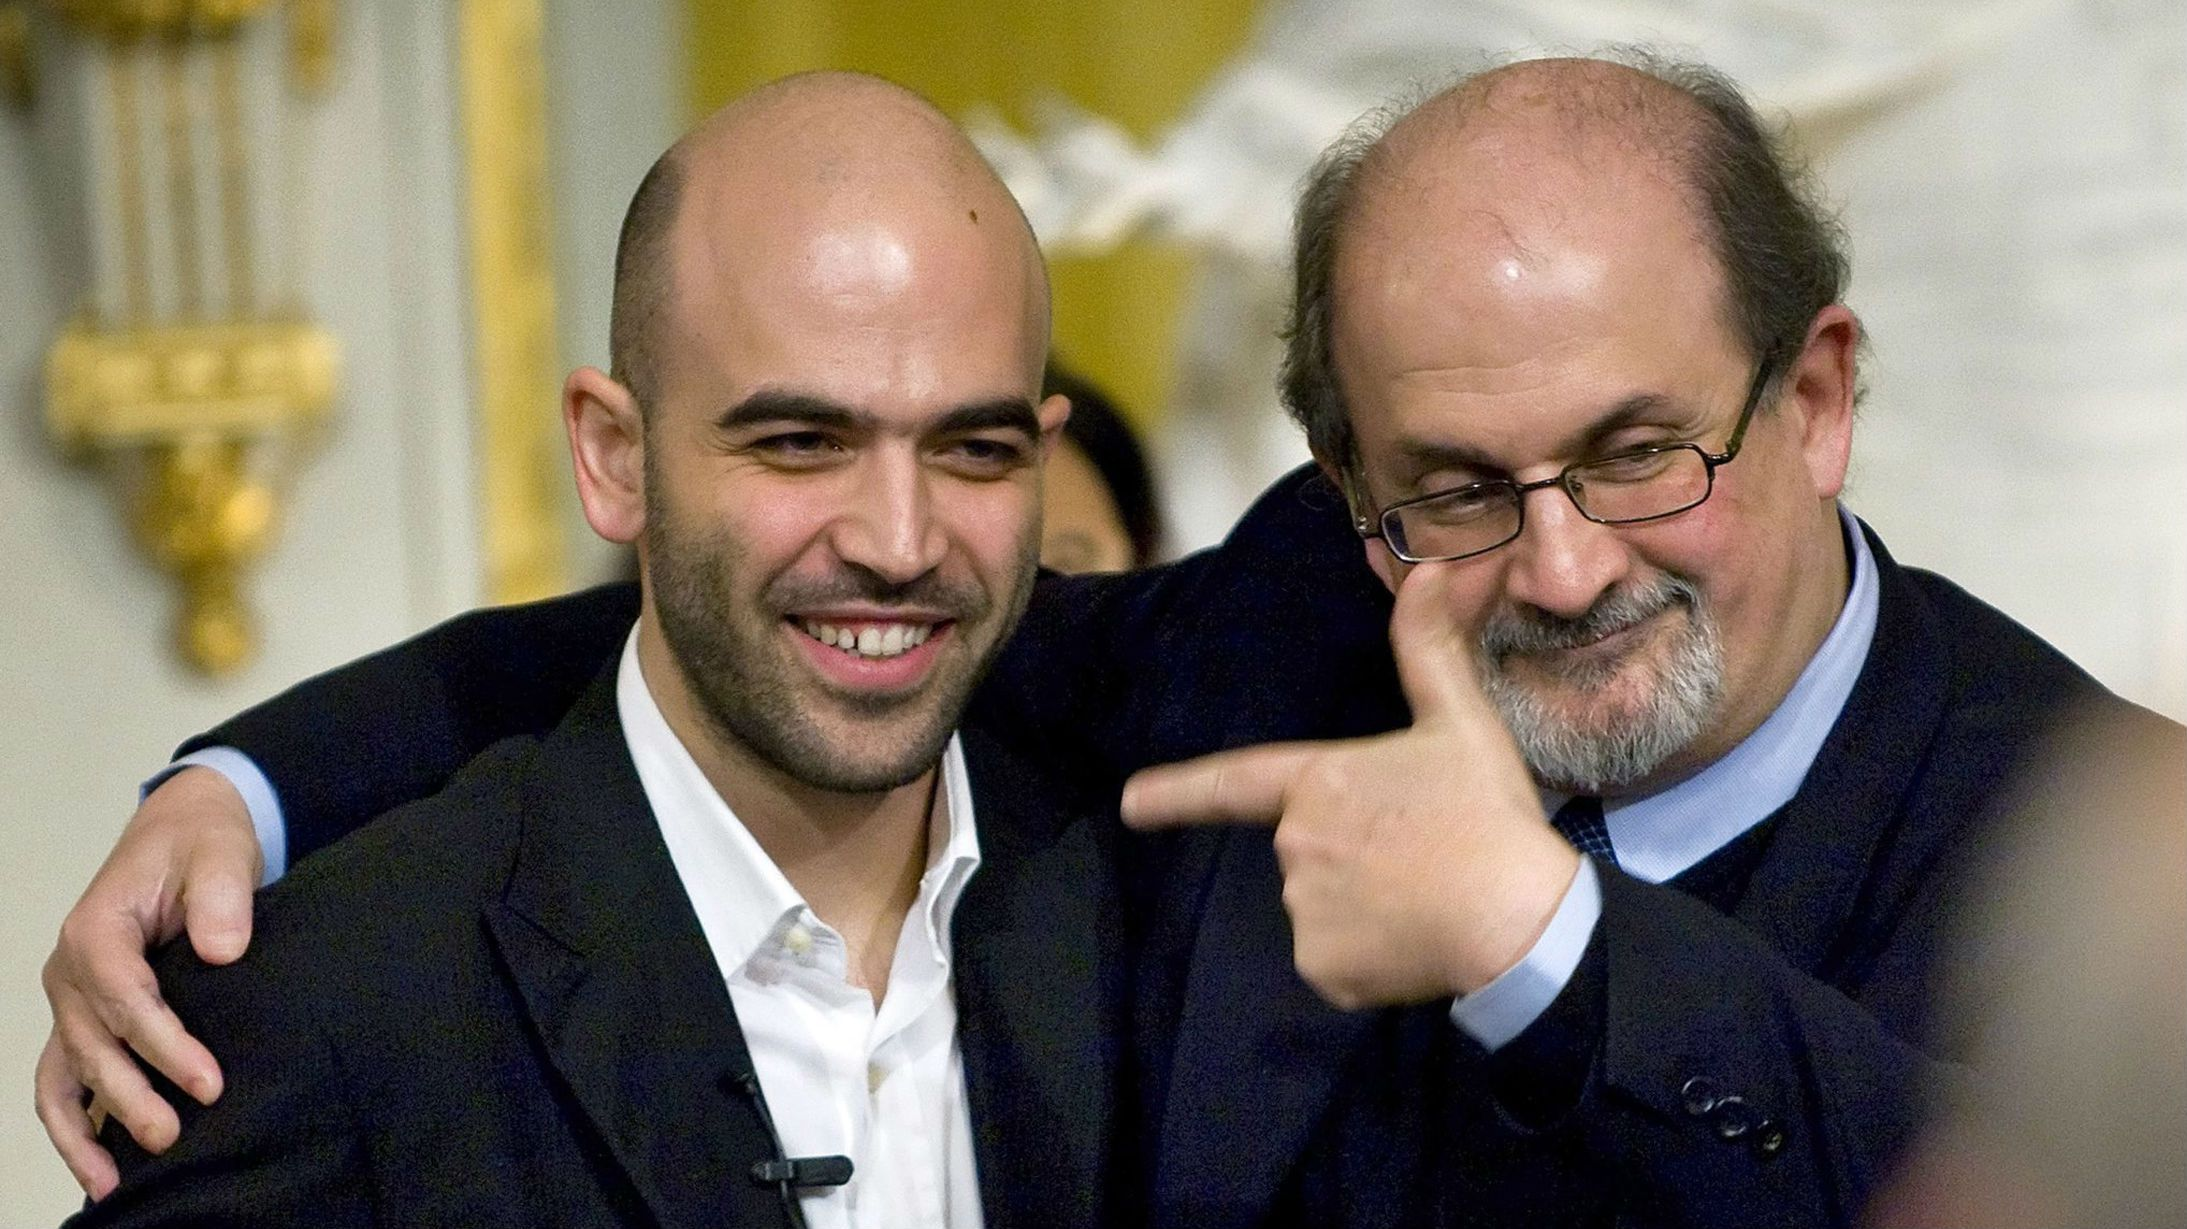 "talian writer-journalist Roberto Saviano (L) and British writer Salman Rushdie pose for media after giving a joint lecture entitled ""Free Speech and Lawless Violence"" at the Royal Academy in Stockholm November 25, 2008. Both writers live under death threats for their writings. REUTERS/Claudio Bresciani/Scanpix"